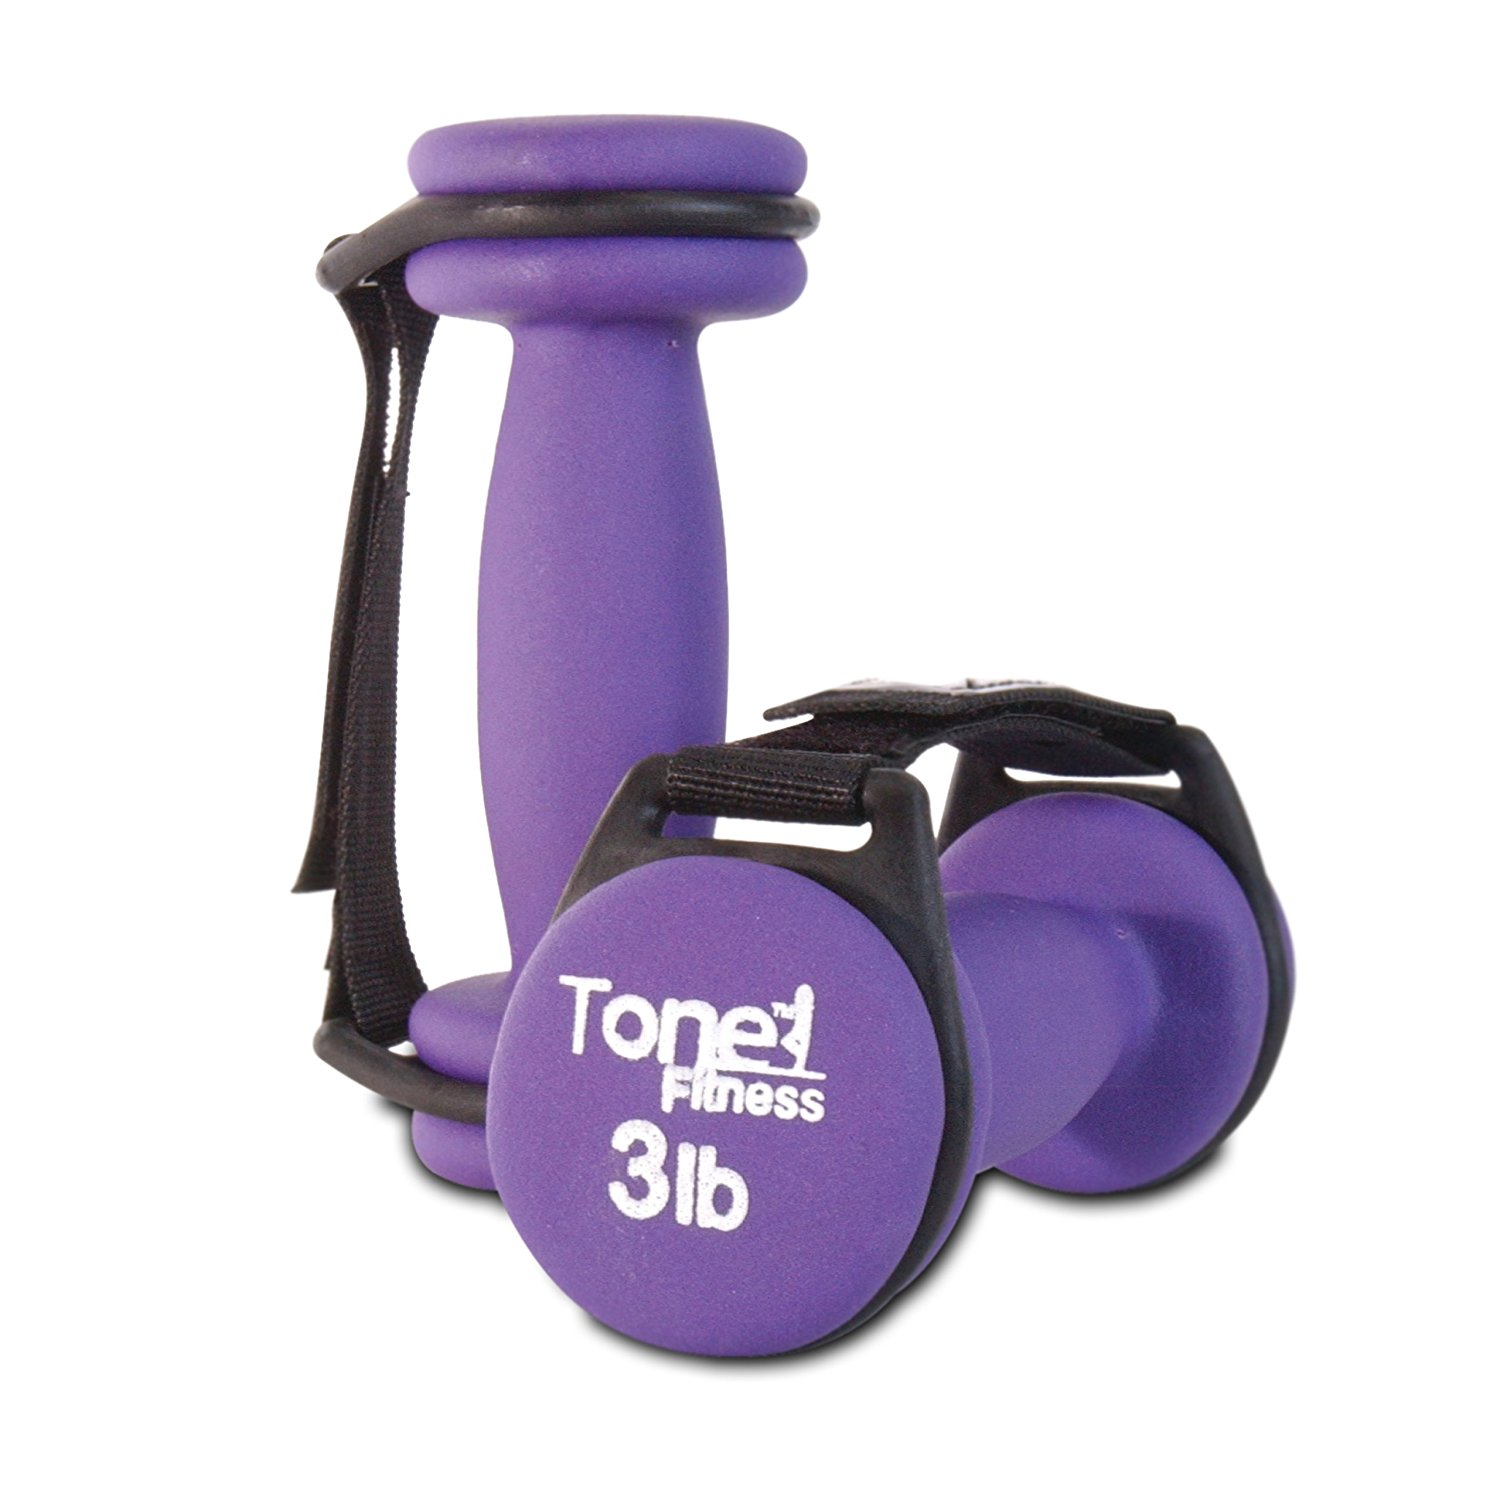 Tone Fitness Walking and Exercise Dumbbells